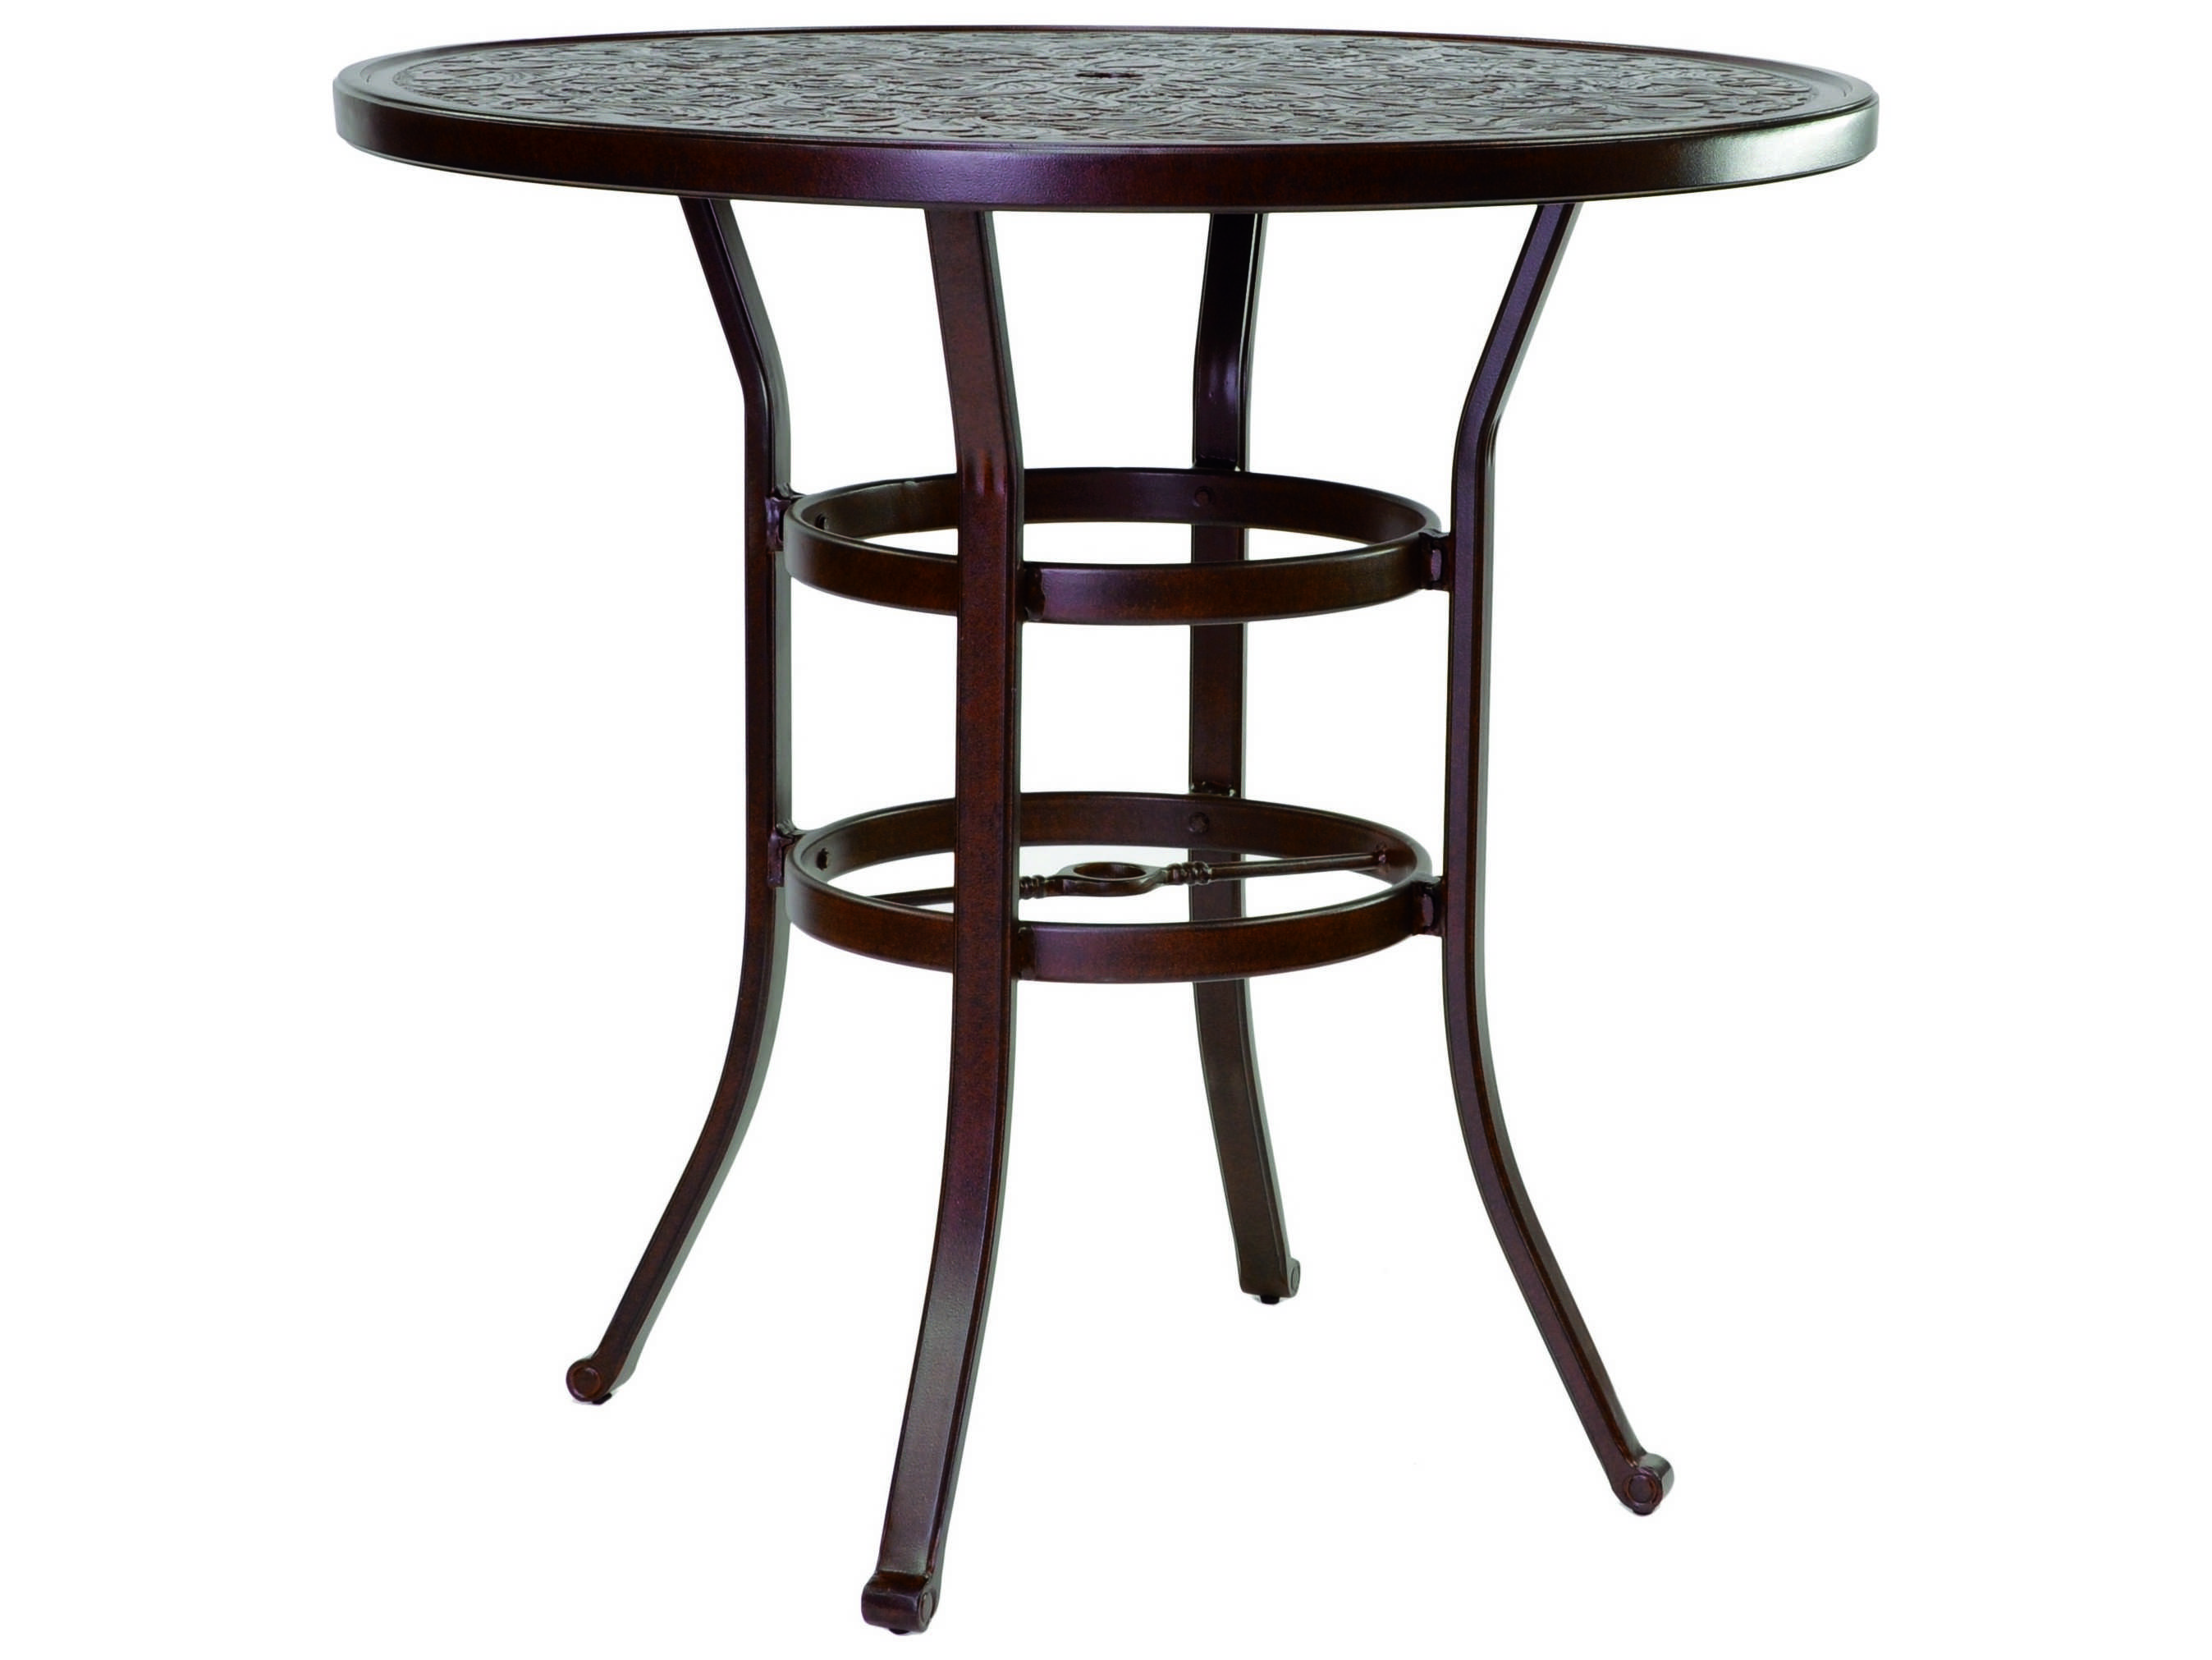 castelle vintage cast aluminum 42 44 round bar height table ready to assemble nch42. Black Bedroom Furniture Sets. Home Design Ideas